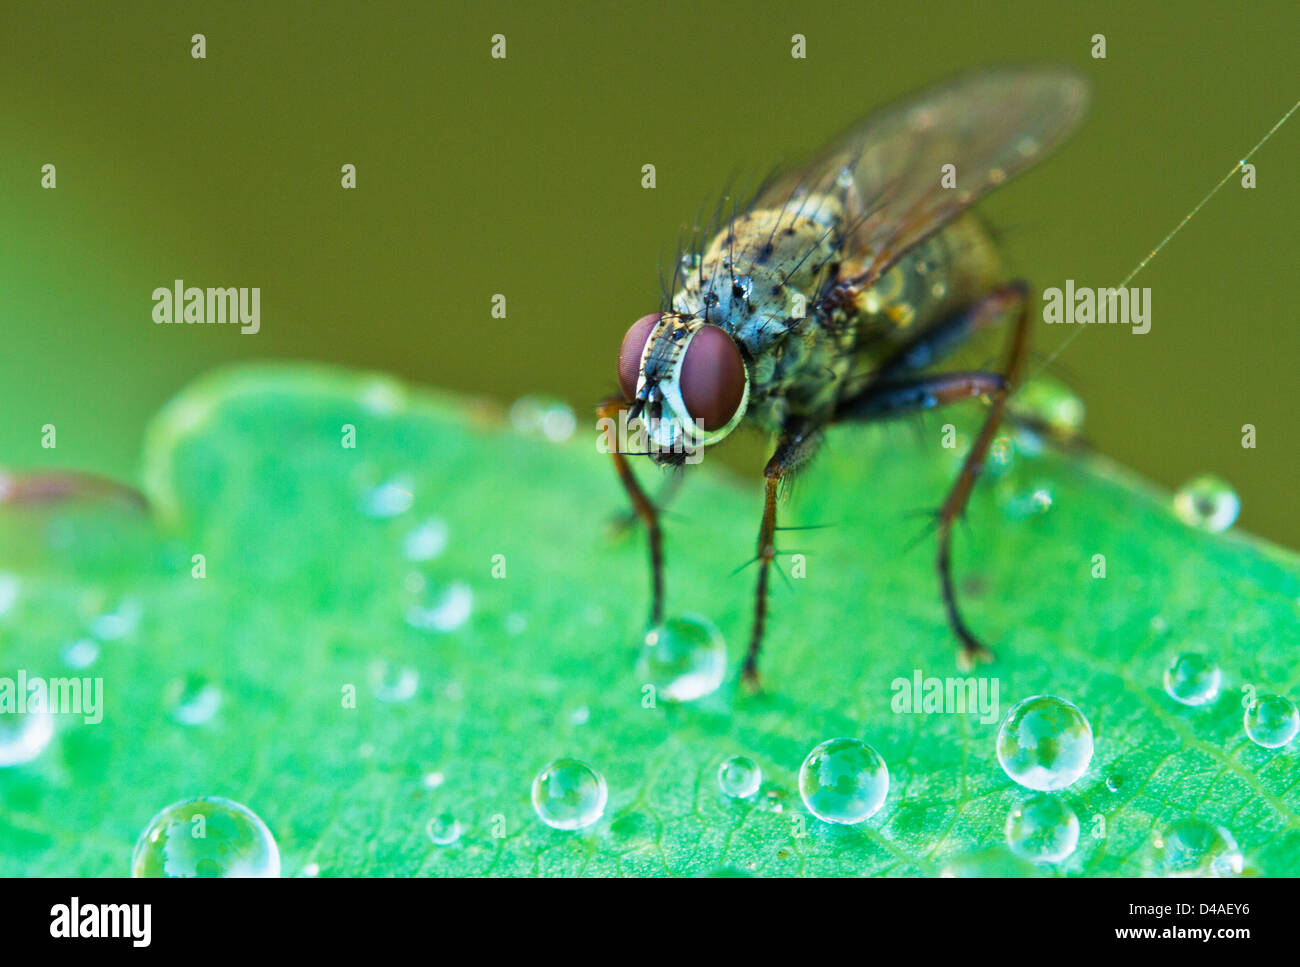 Tachinid fly perched on a leaf with dew in morning light Stock Photo